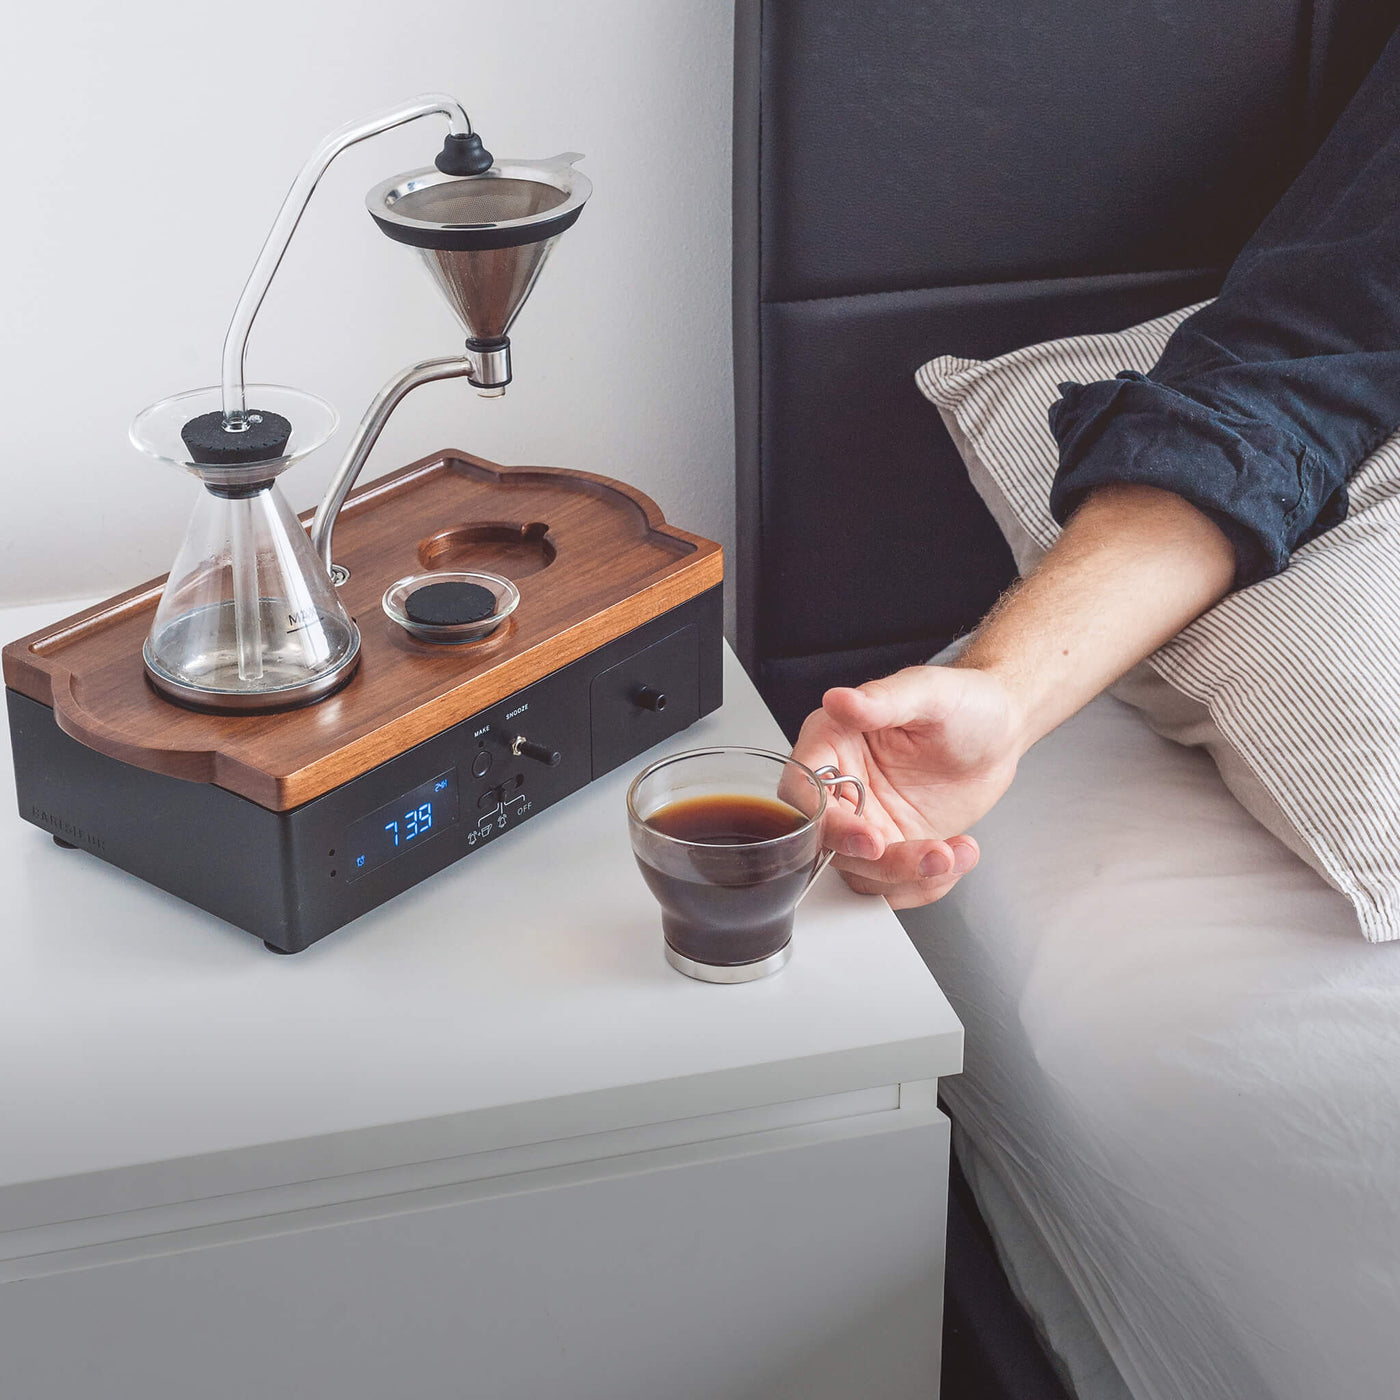 Shop Barisieur Coffee Alarm Clock from Burton Blake